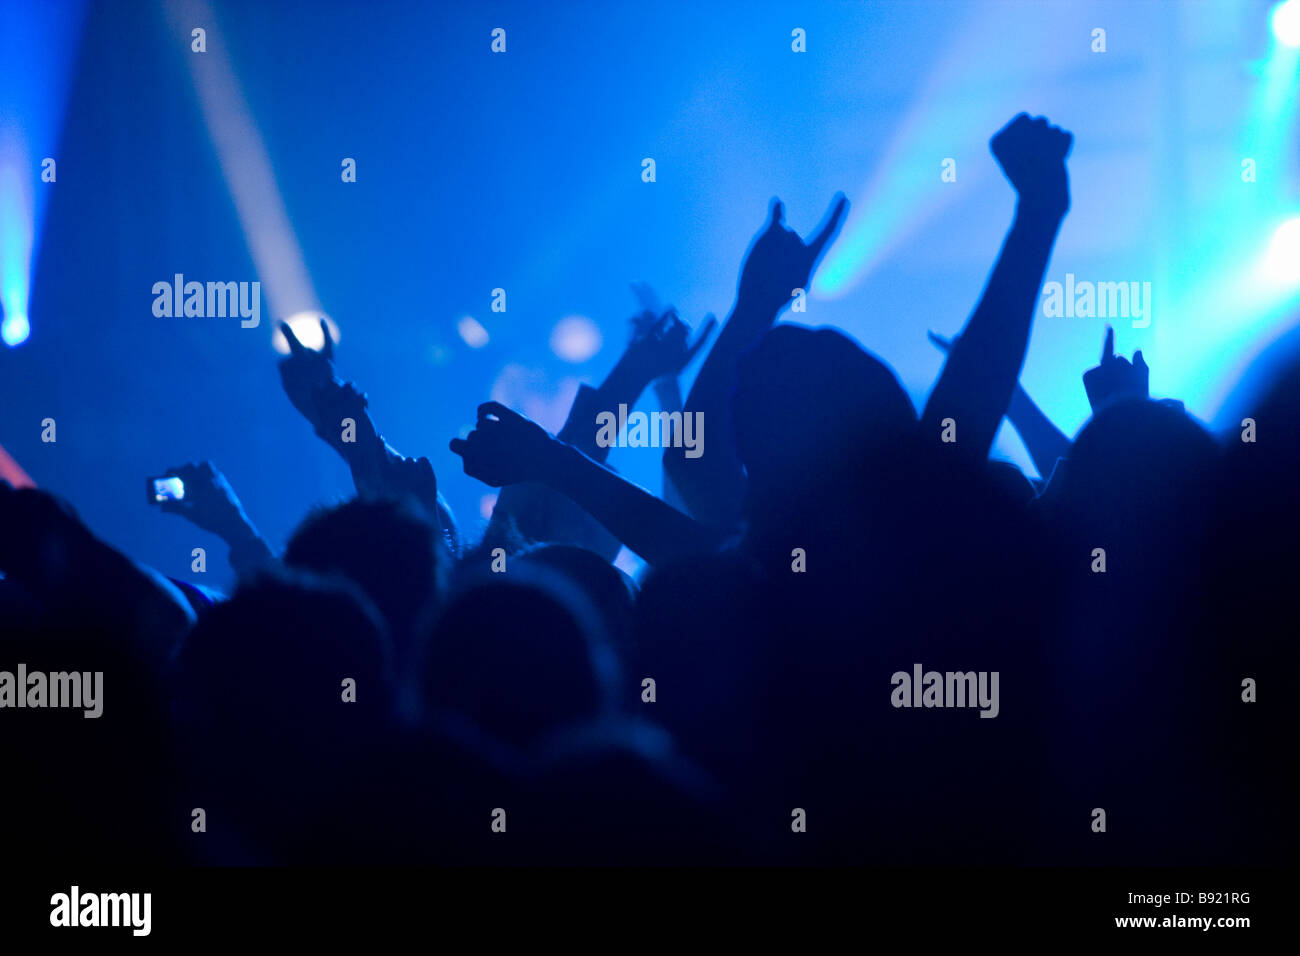 Audience under a music concert. - Stock Image